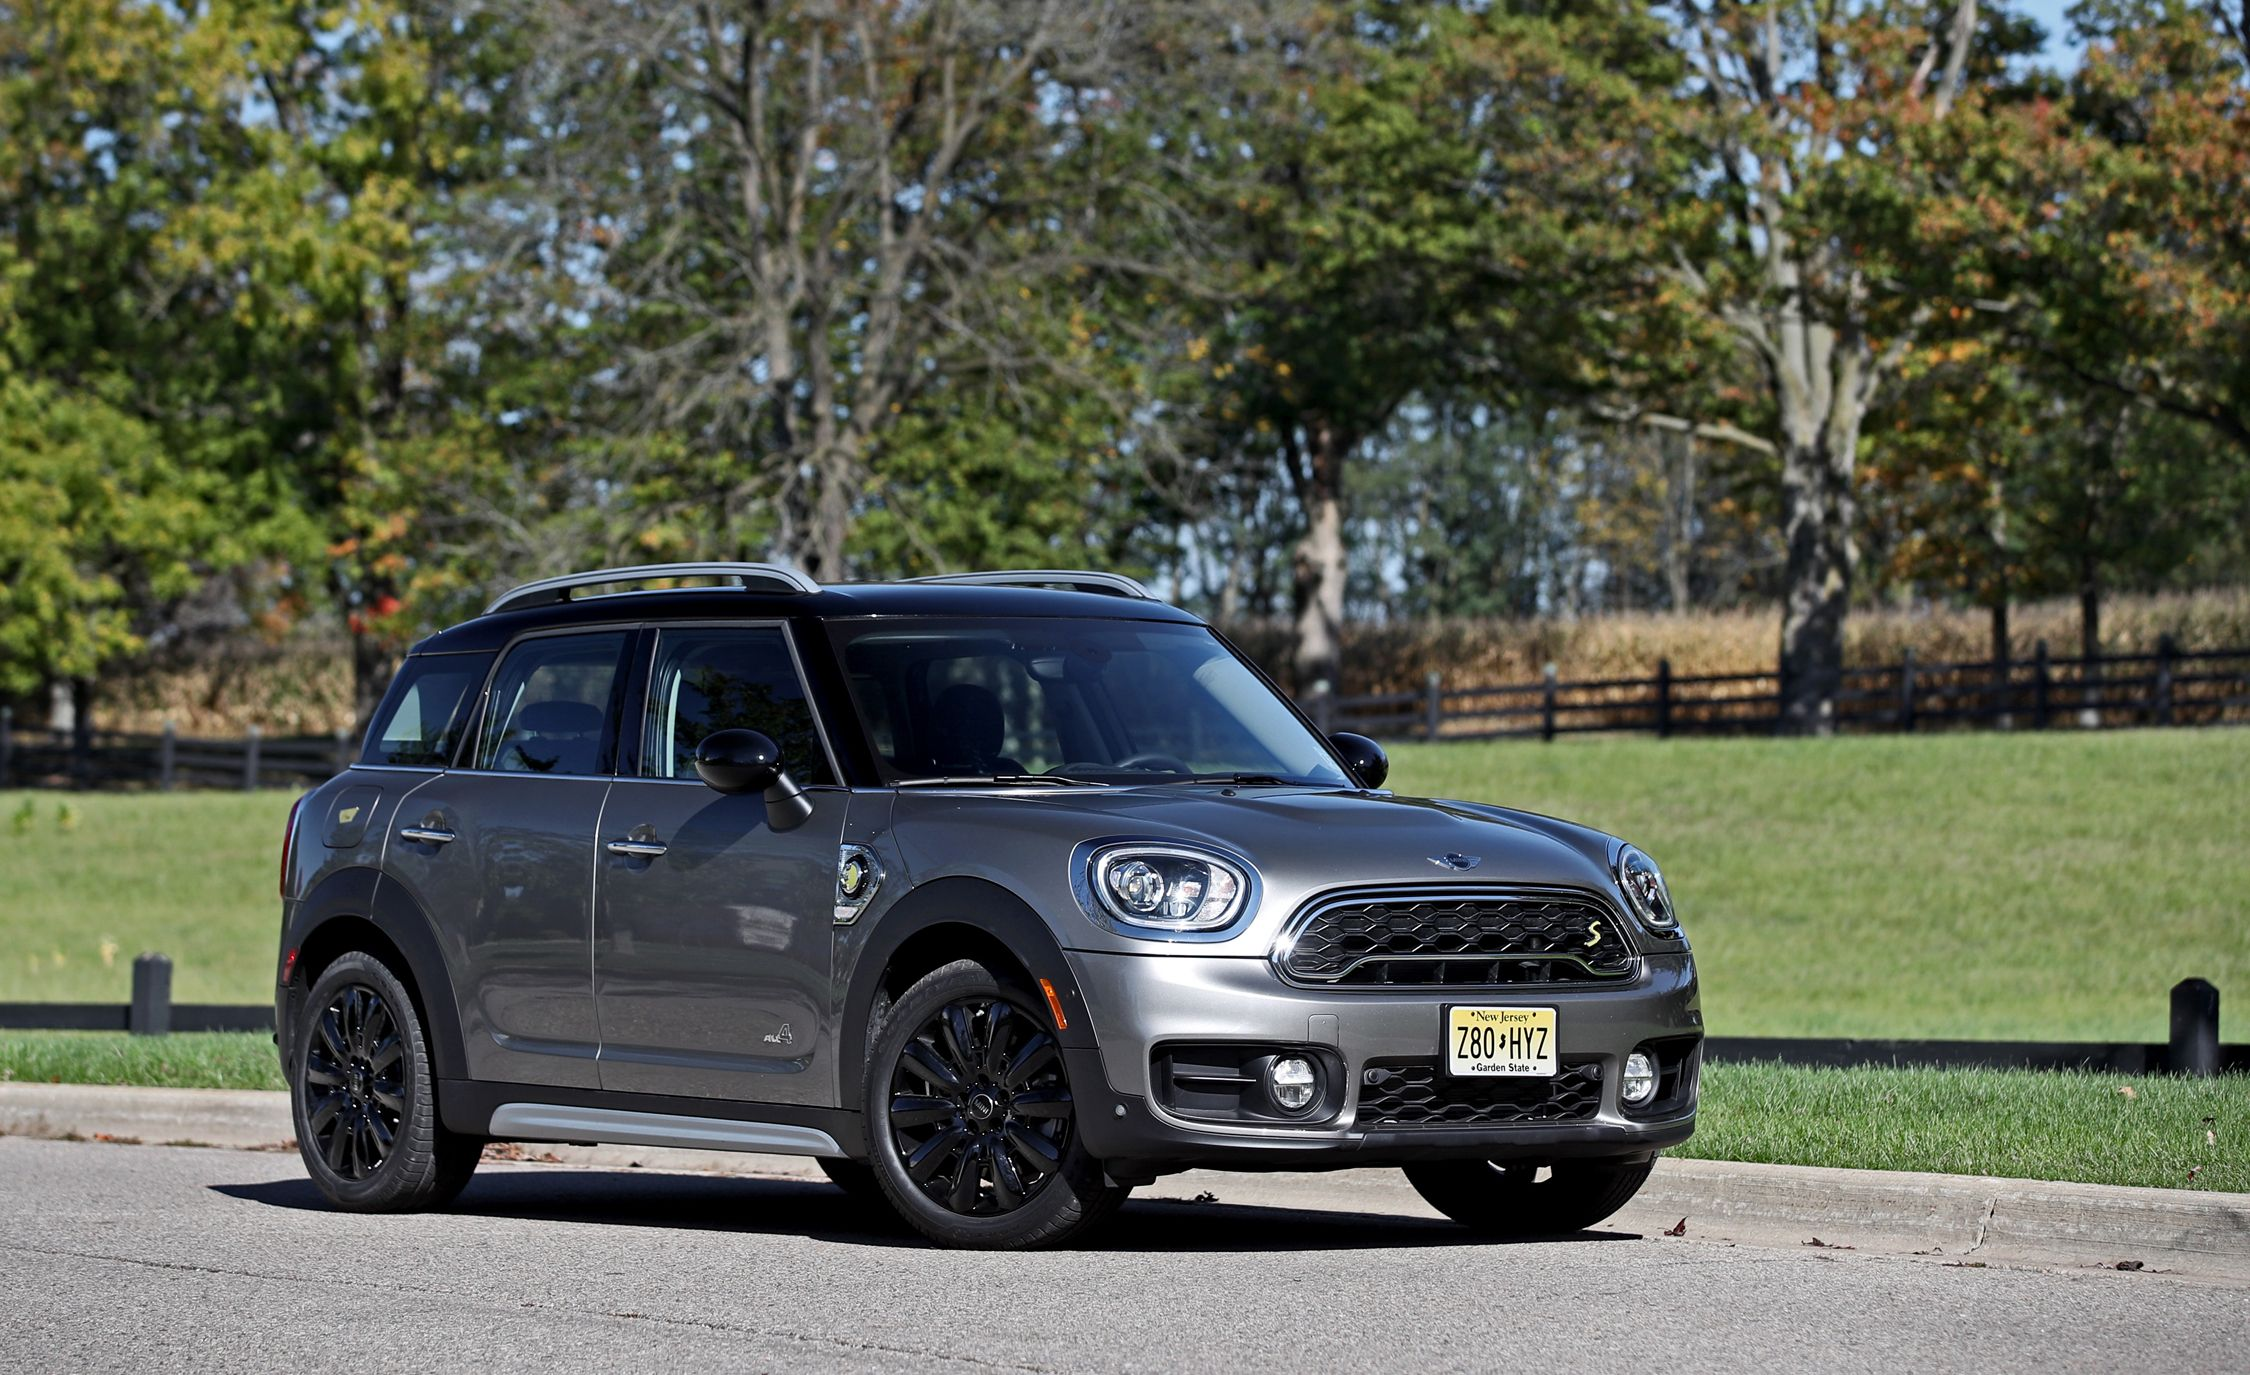 Rolls Royce Build And Price >> 2018 Mini Cooper Countryman | Engine and Transmission Review | Car and Driver